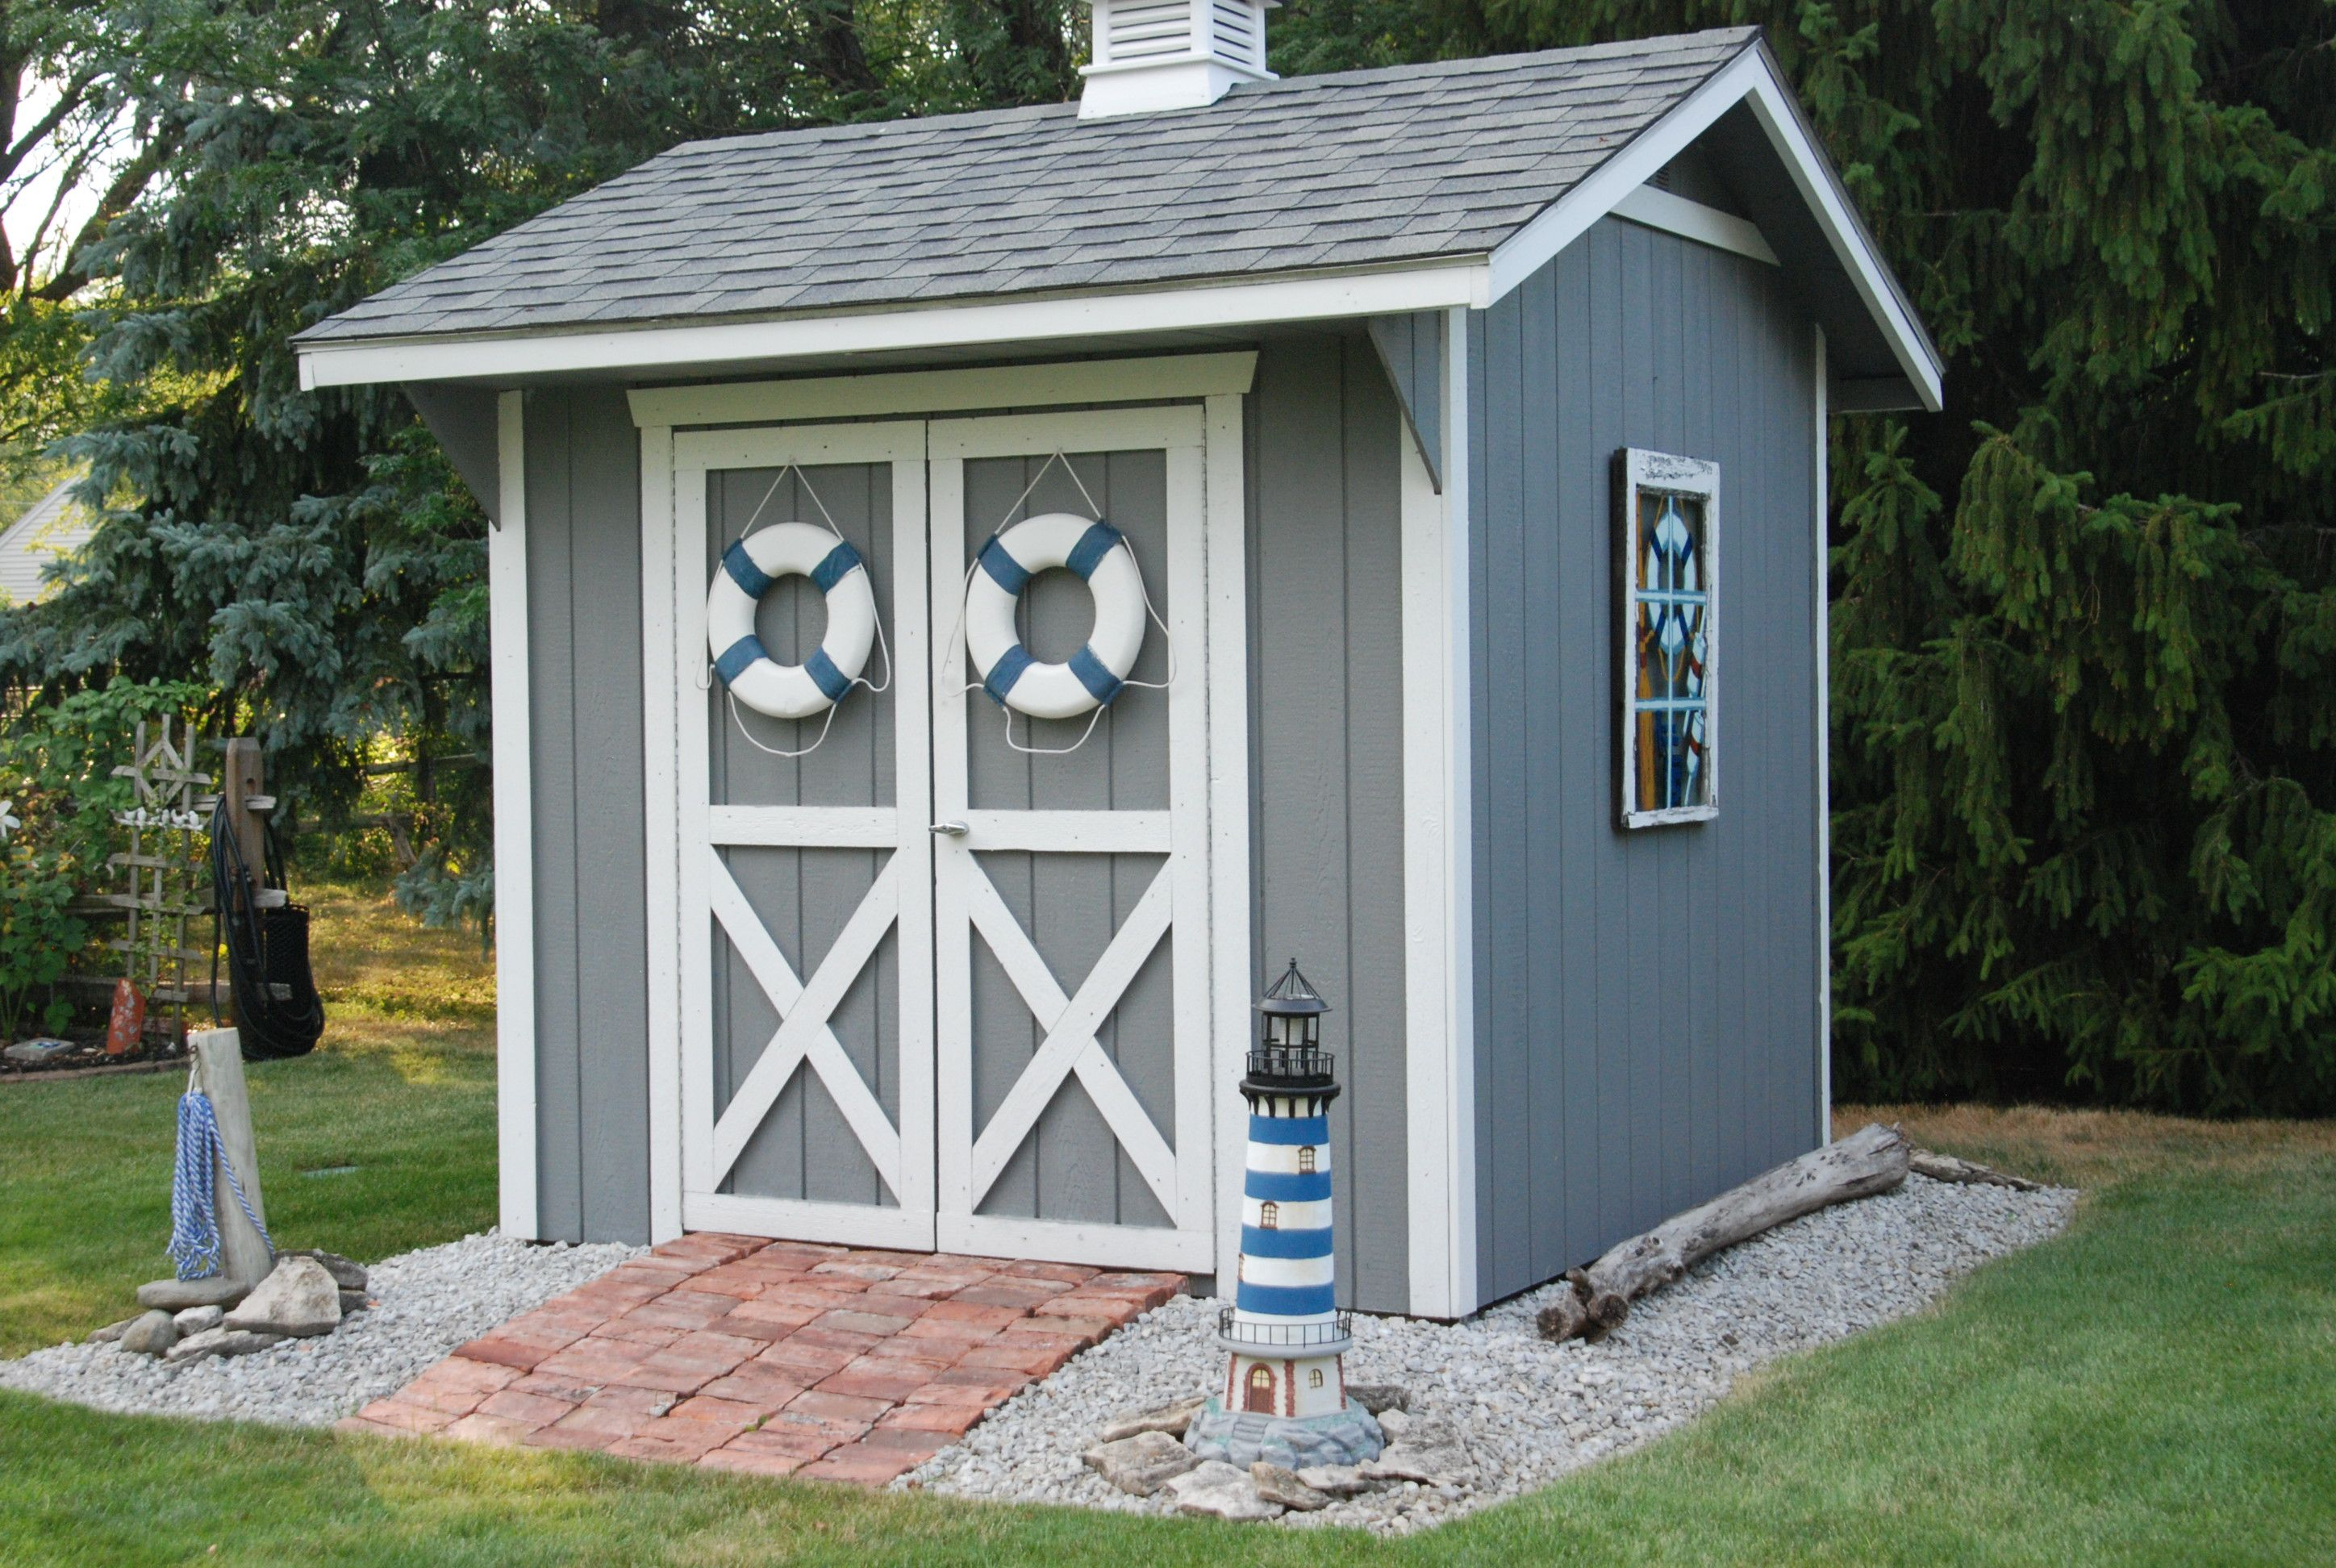 pool shed perfection | For the Home in 2019 | Pool house ... Pool Pump Shed House Design on pool pump enclosures sheds, water well pump sheds, pool filter sheds, cover well pump sheds, well house sheds, pool house or pool covers, pool deck sheds, swi ing pool pump sheds, pool barn sheds,